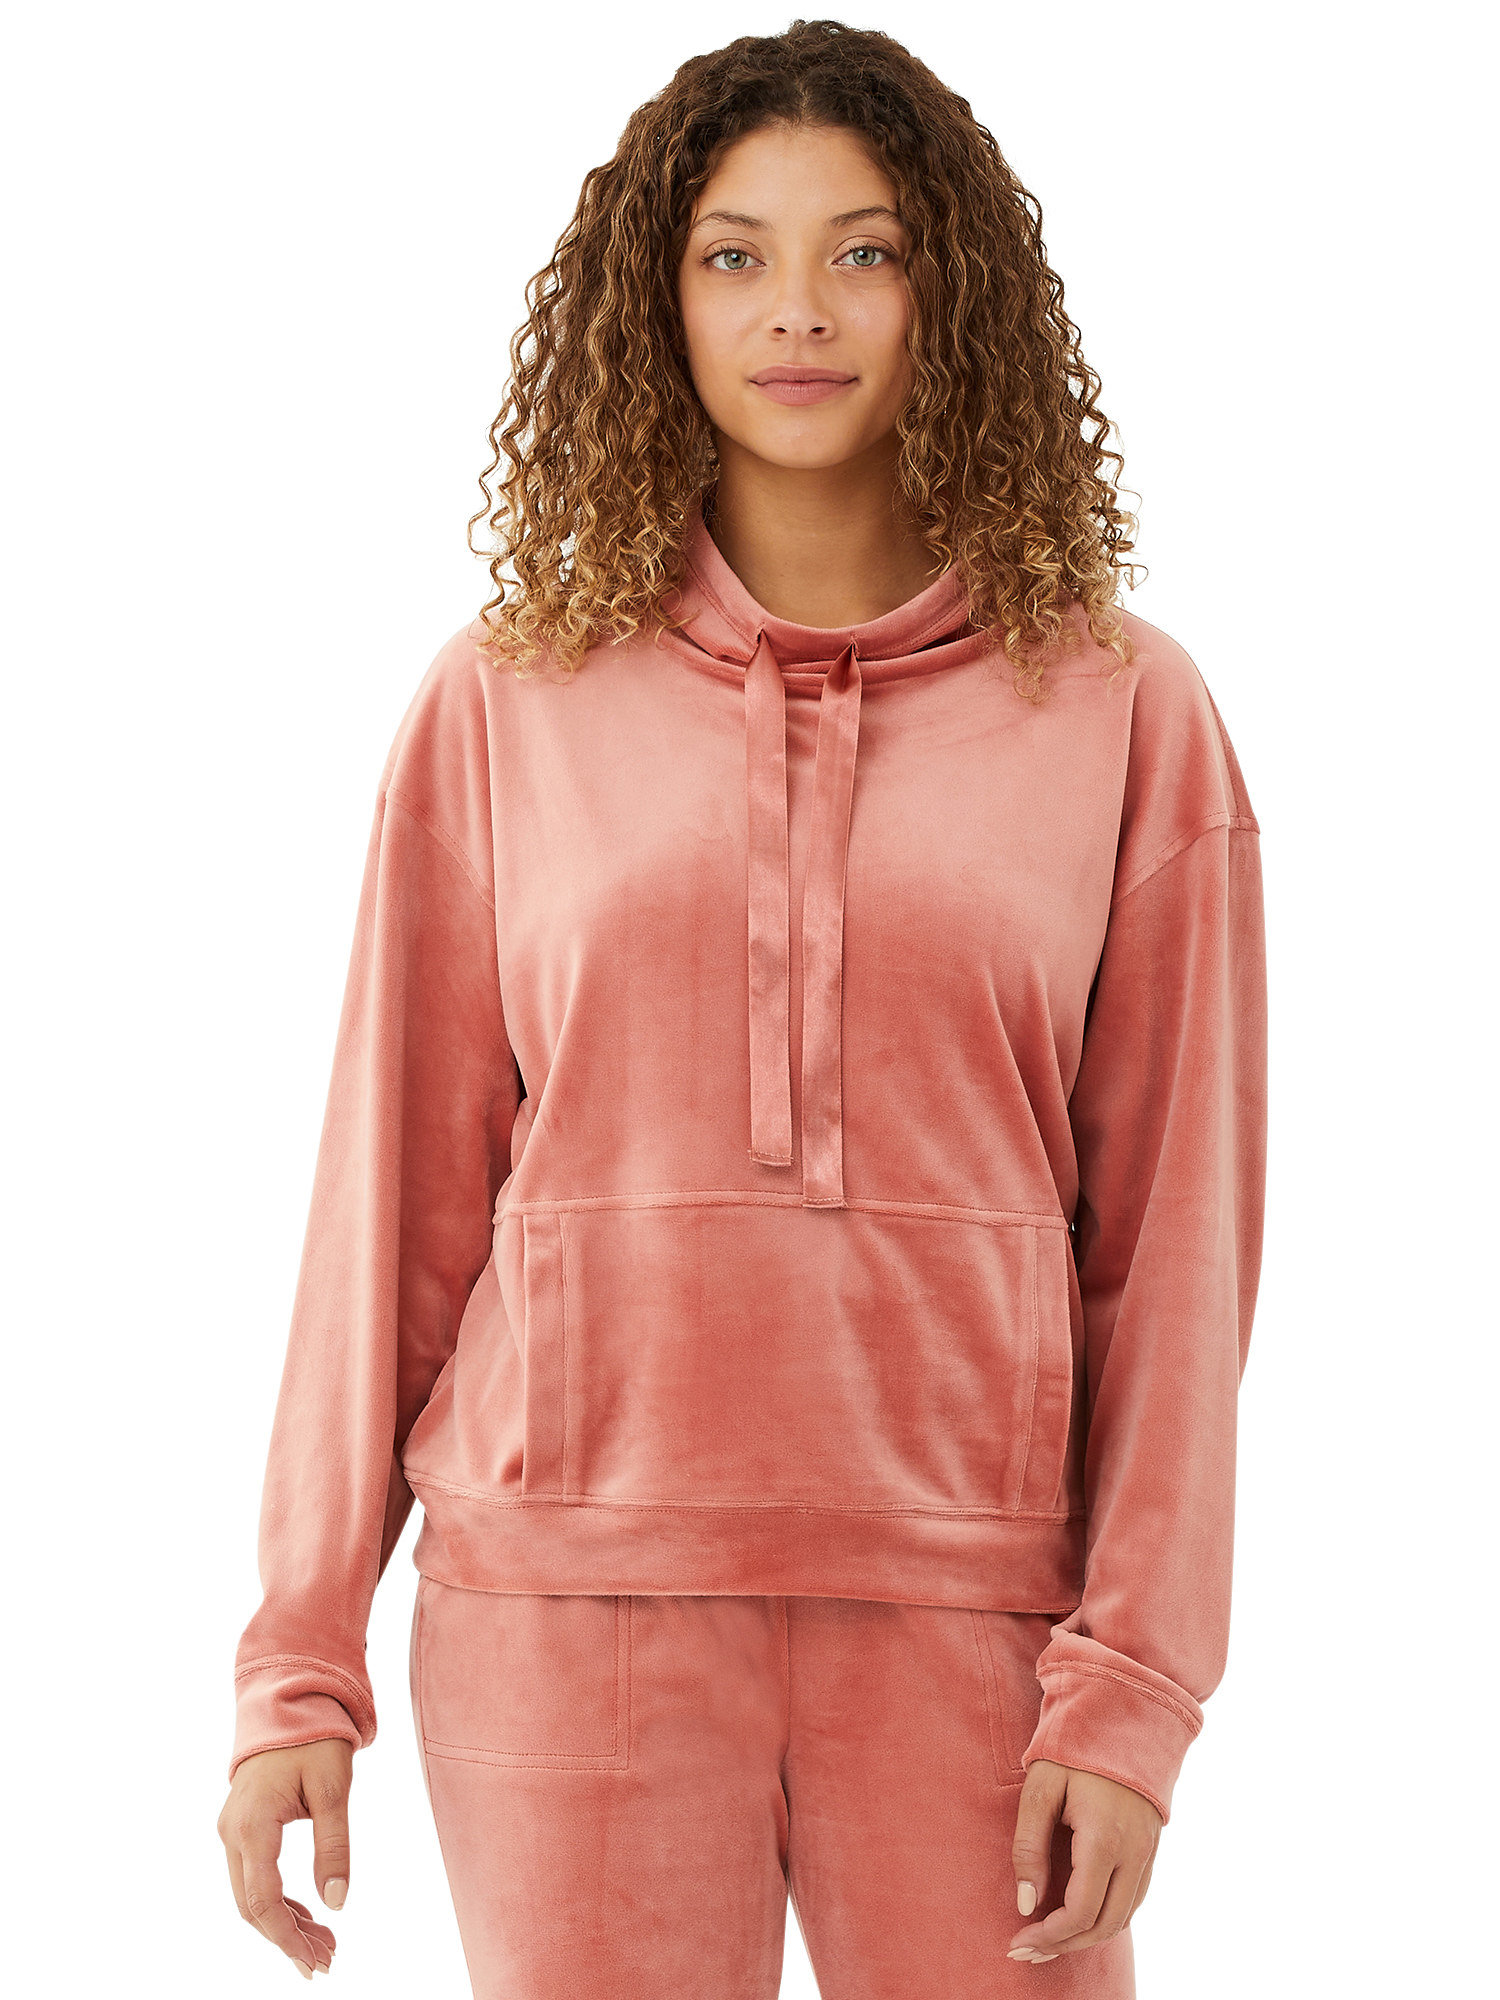 The velour pullover